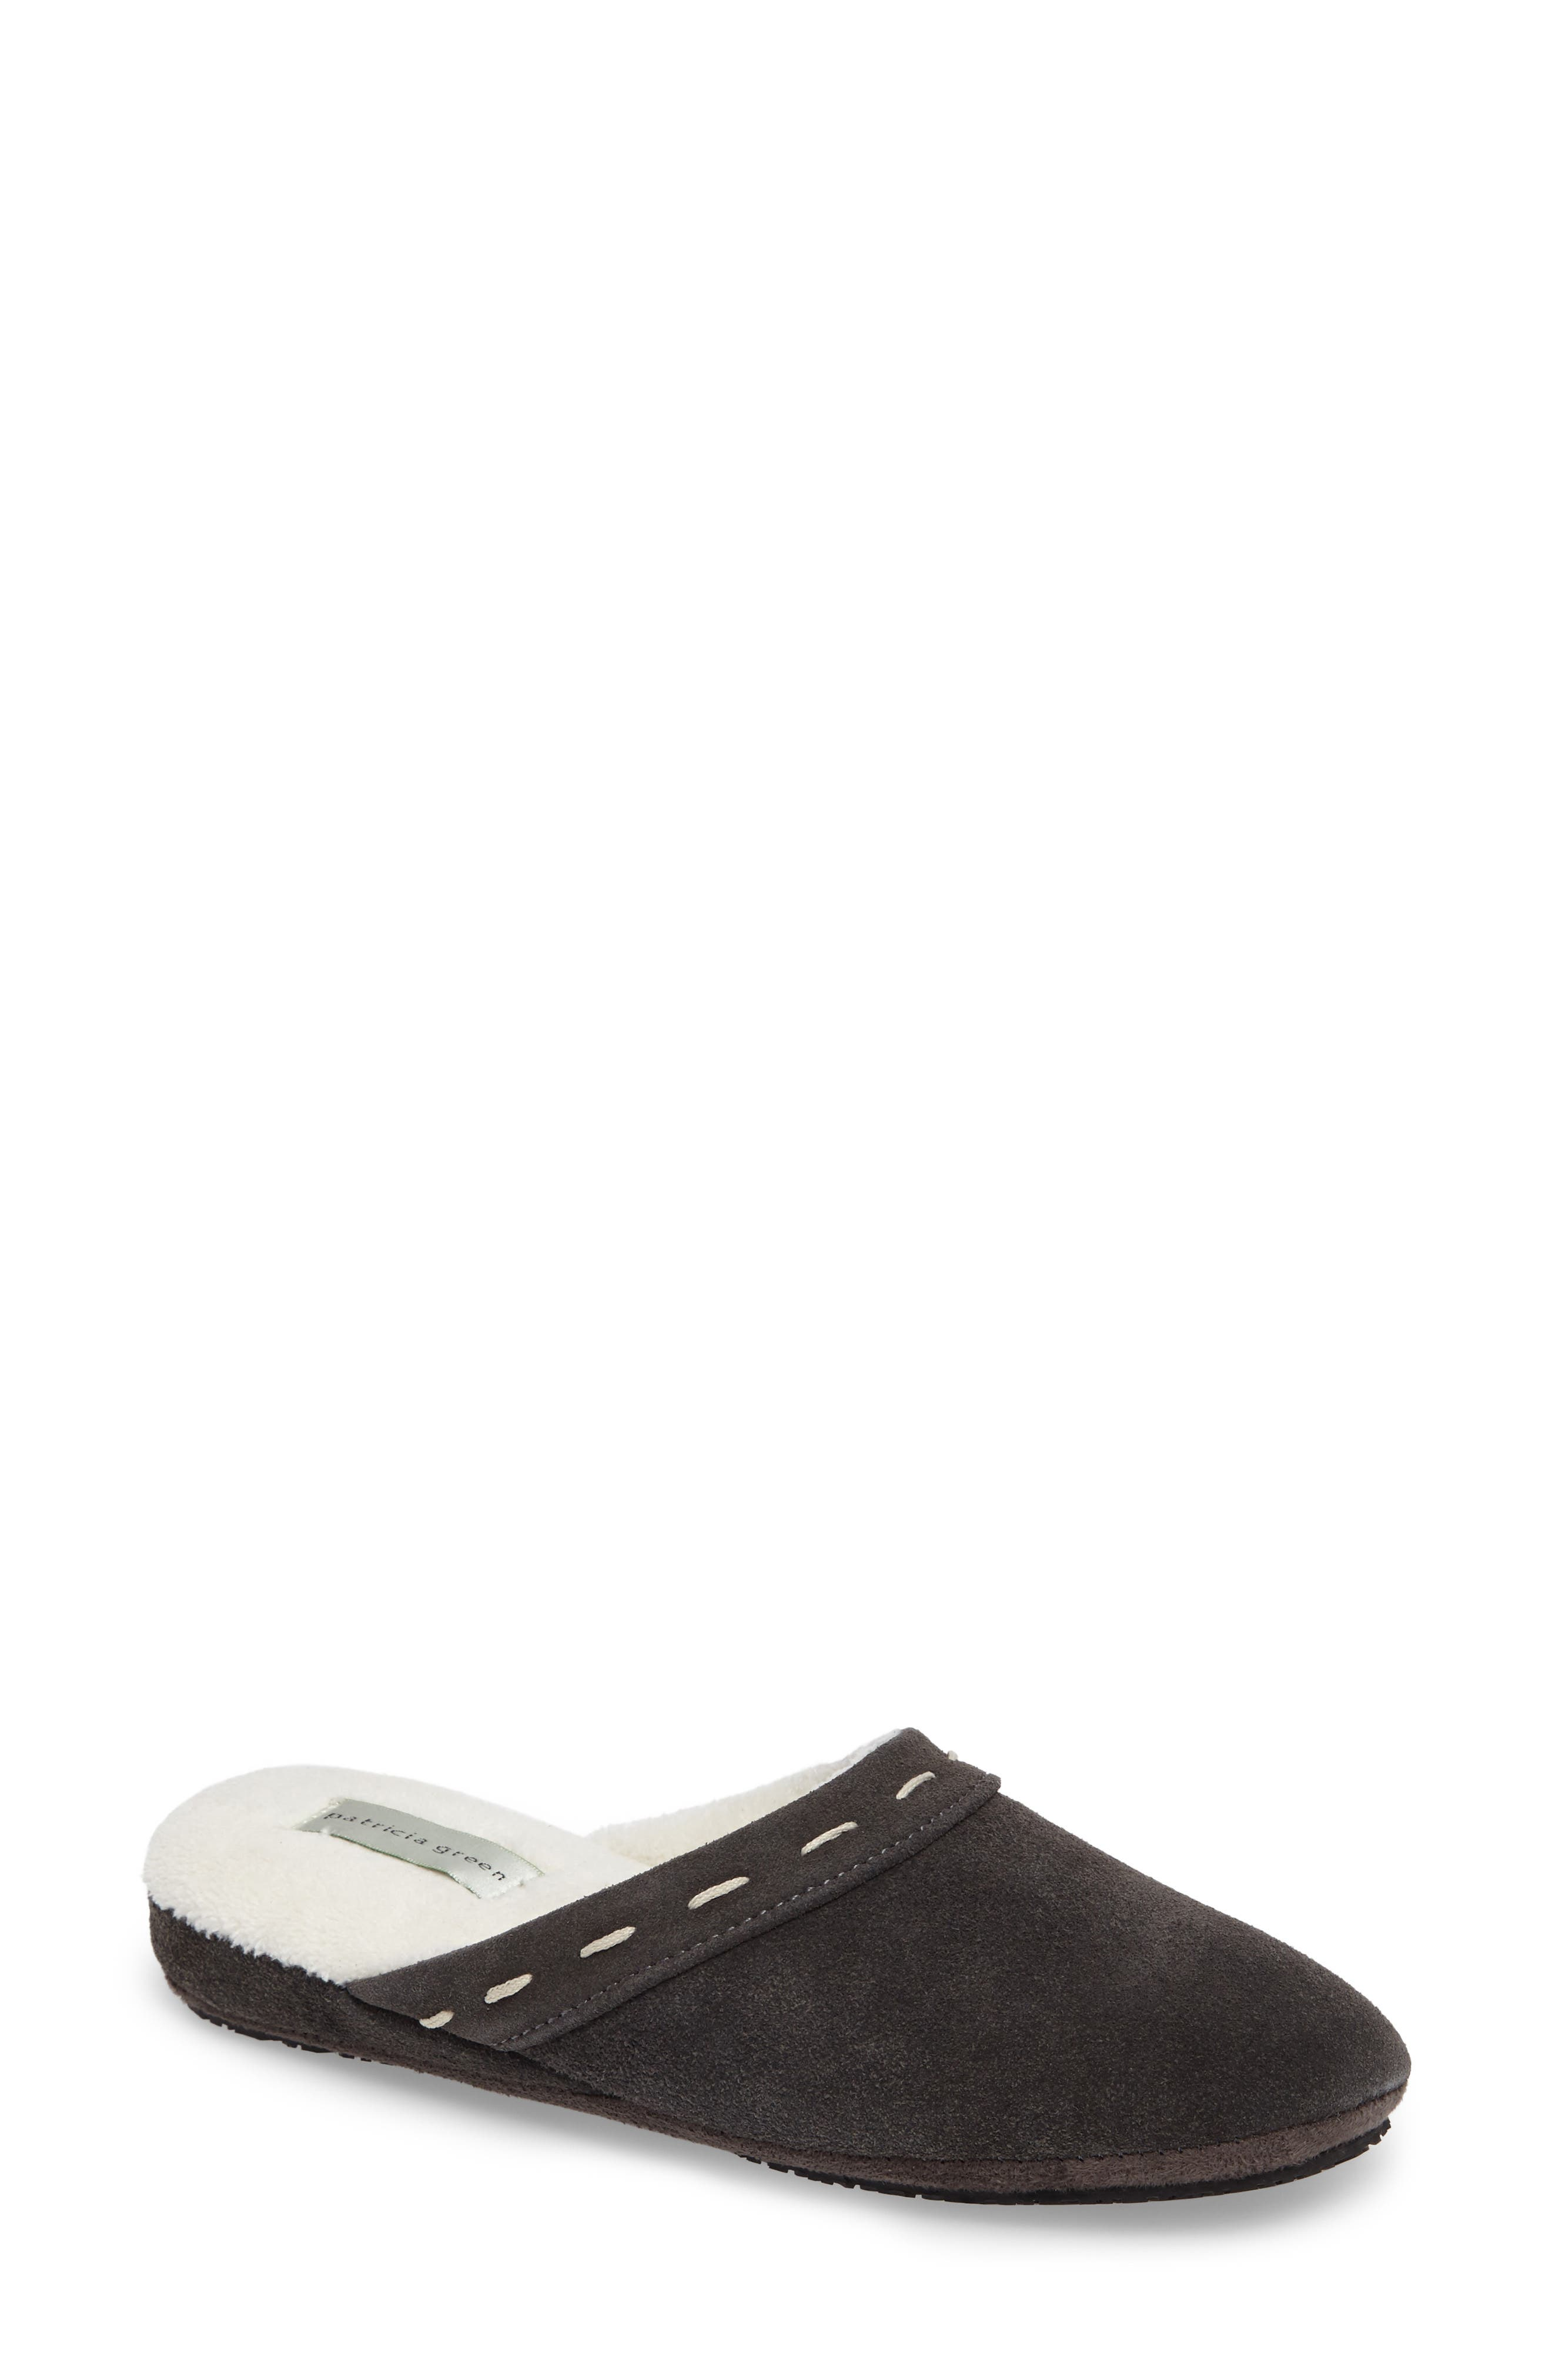 Mayfair Wedge Slipper,                             Main thumbnail 1, color,                             Charcoal Suede